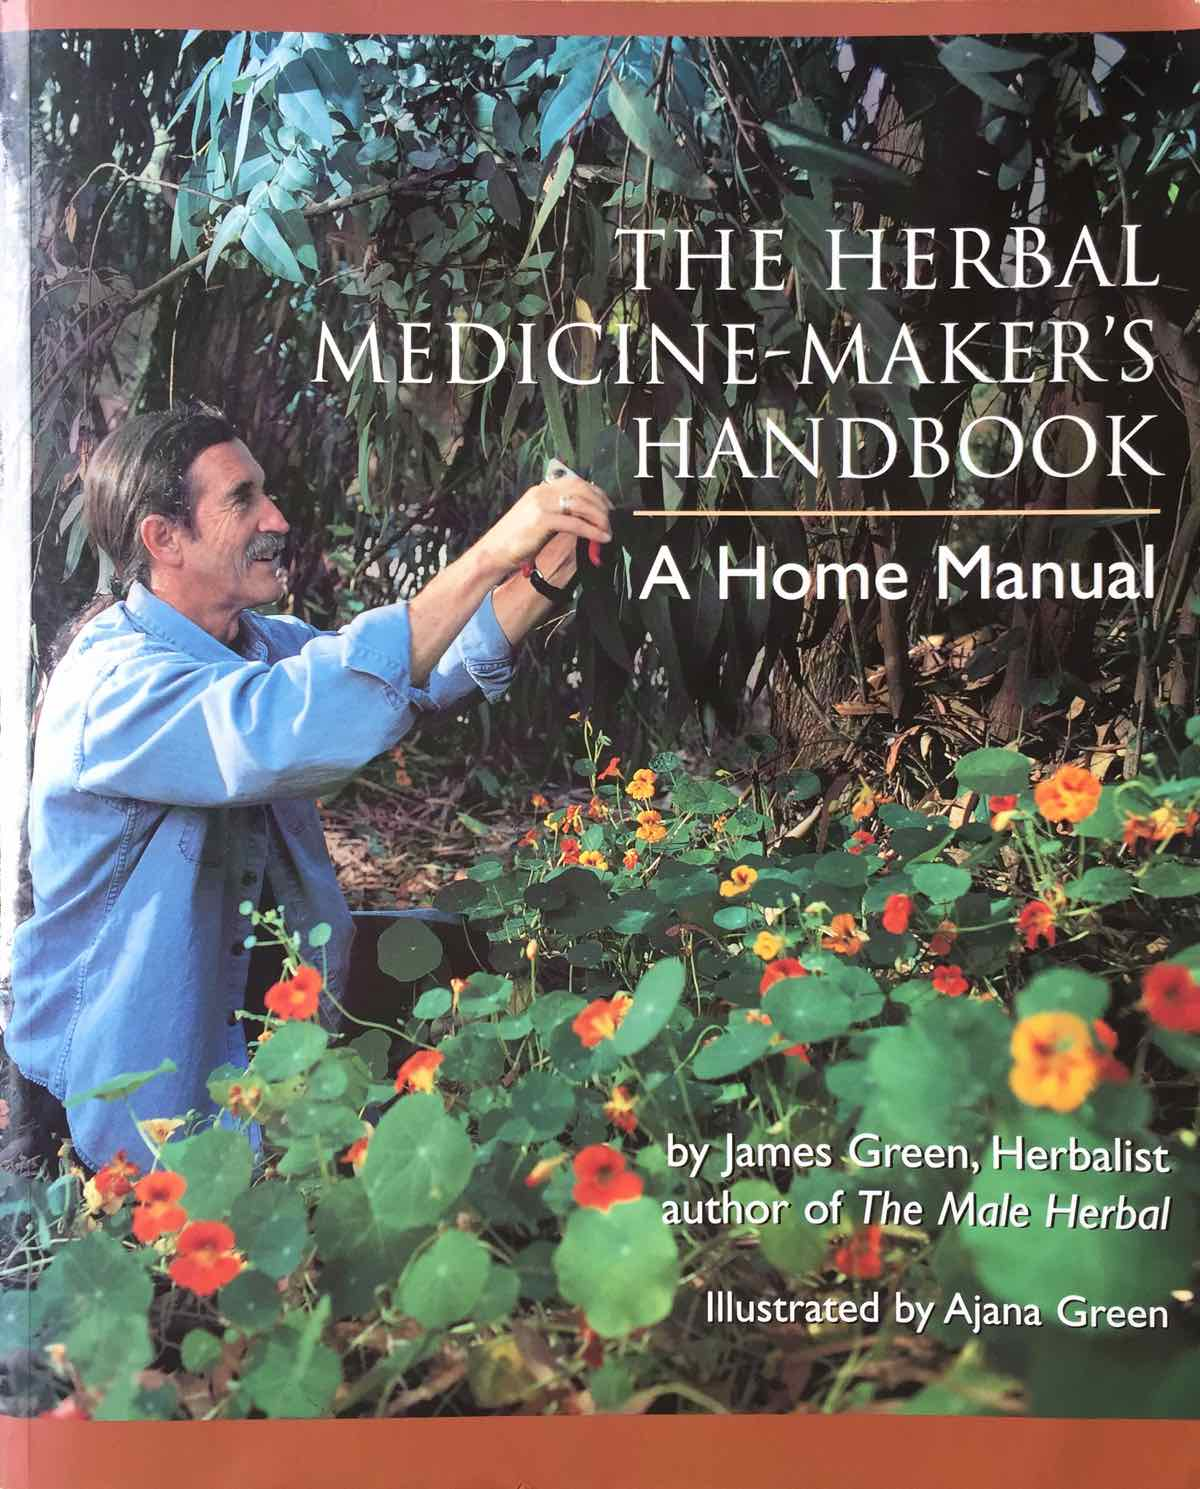 The Medicine-Maker's Handbook By James Green